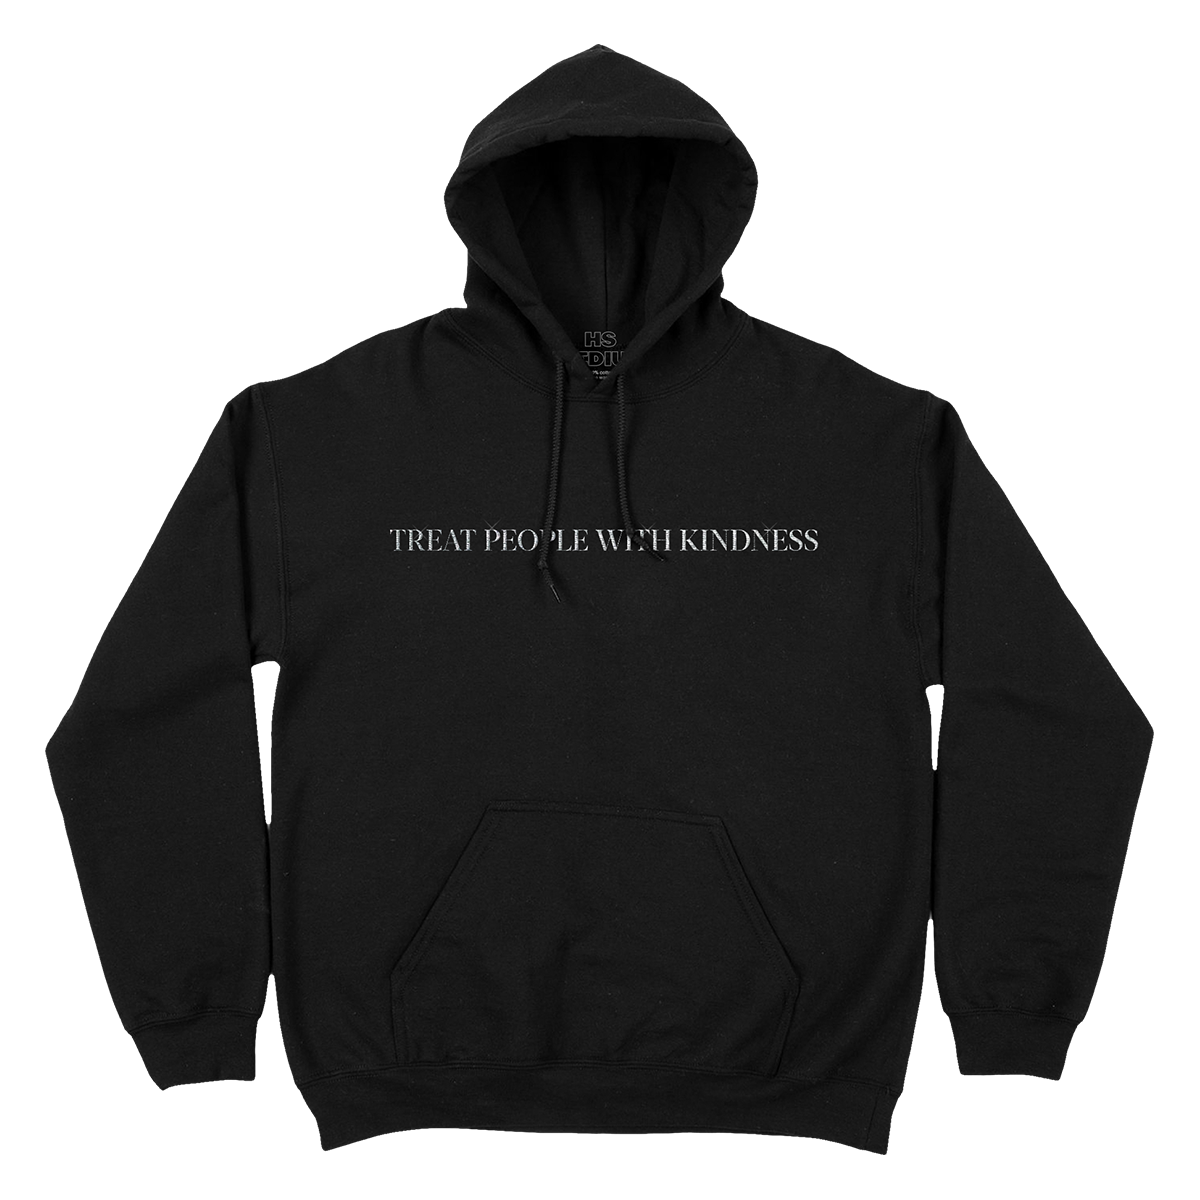 Treat People With Kindness Hoodie (Metallic Silver Embroidery)